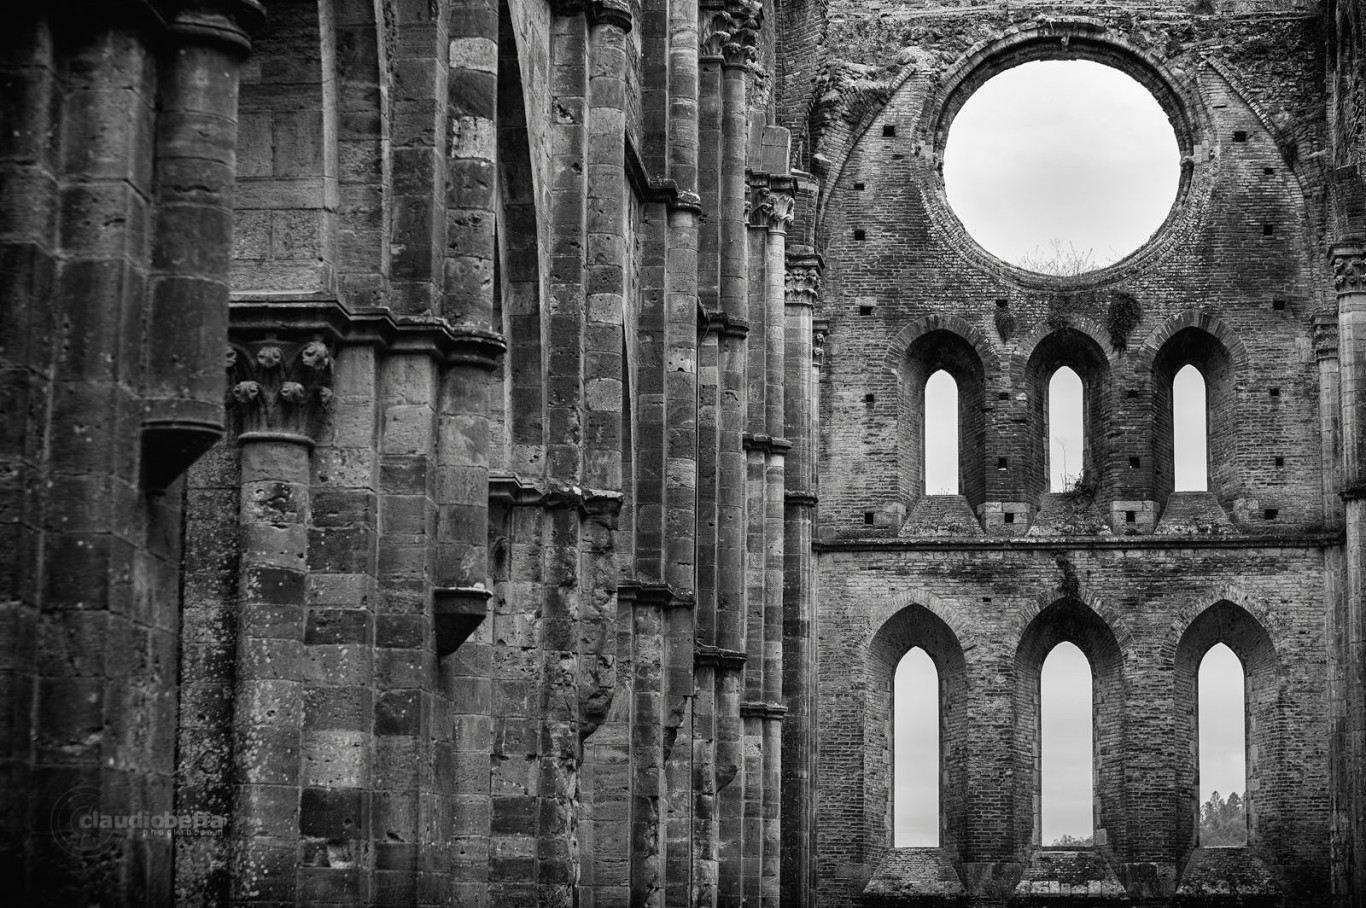 San Galgano, Abbey, Nave, Apse, Rose, Windows, Layers, Capitals, Arches, Ruin, Tuscany, Italy, Nature, History, Architecture